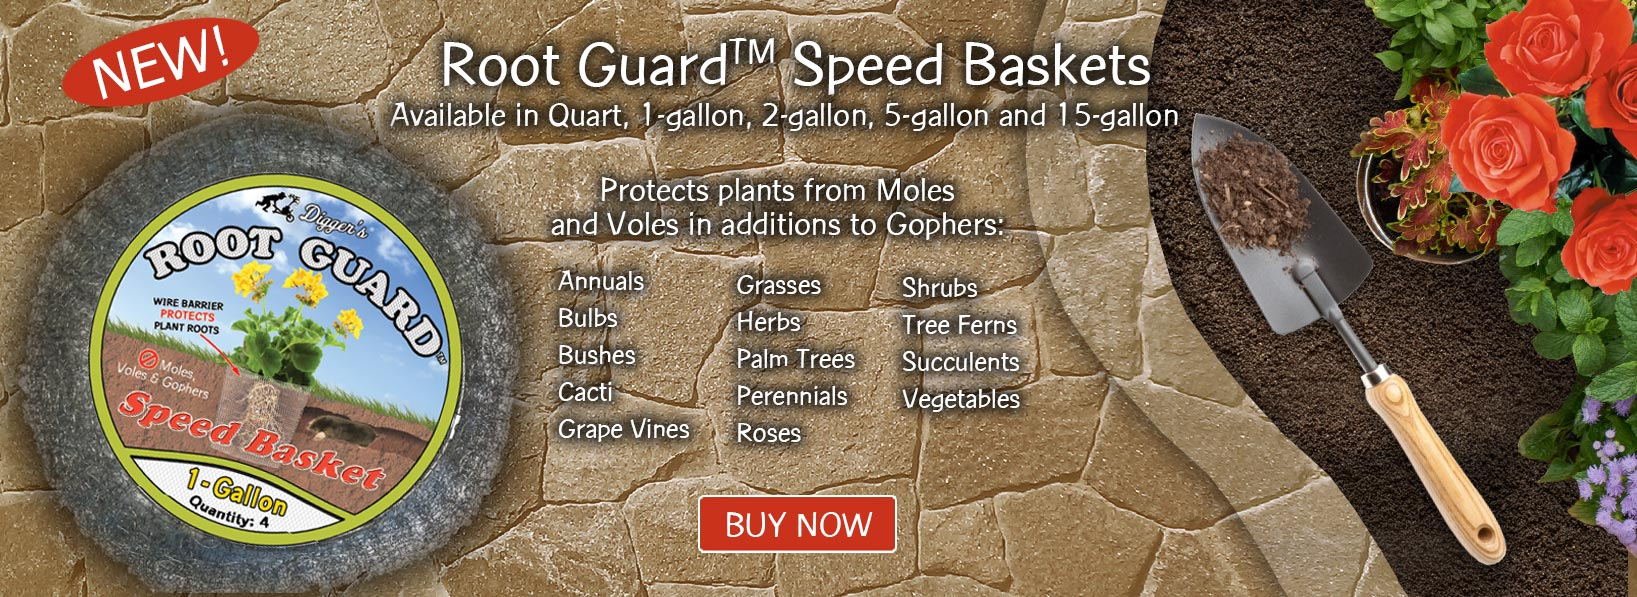 Root Guard Speed Baskets